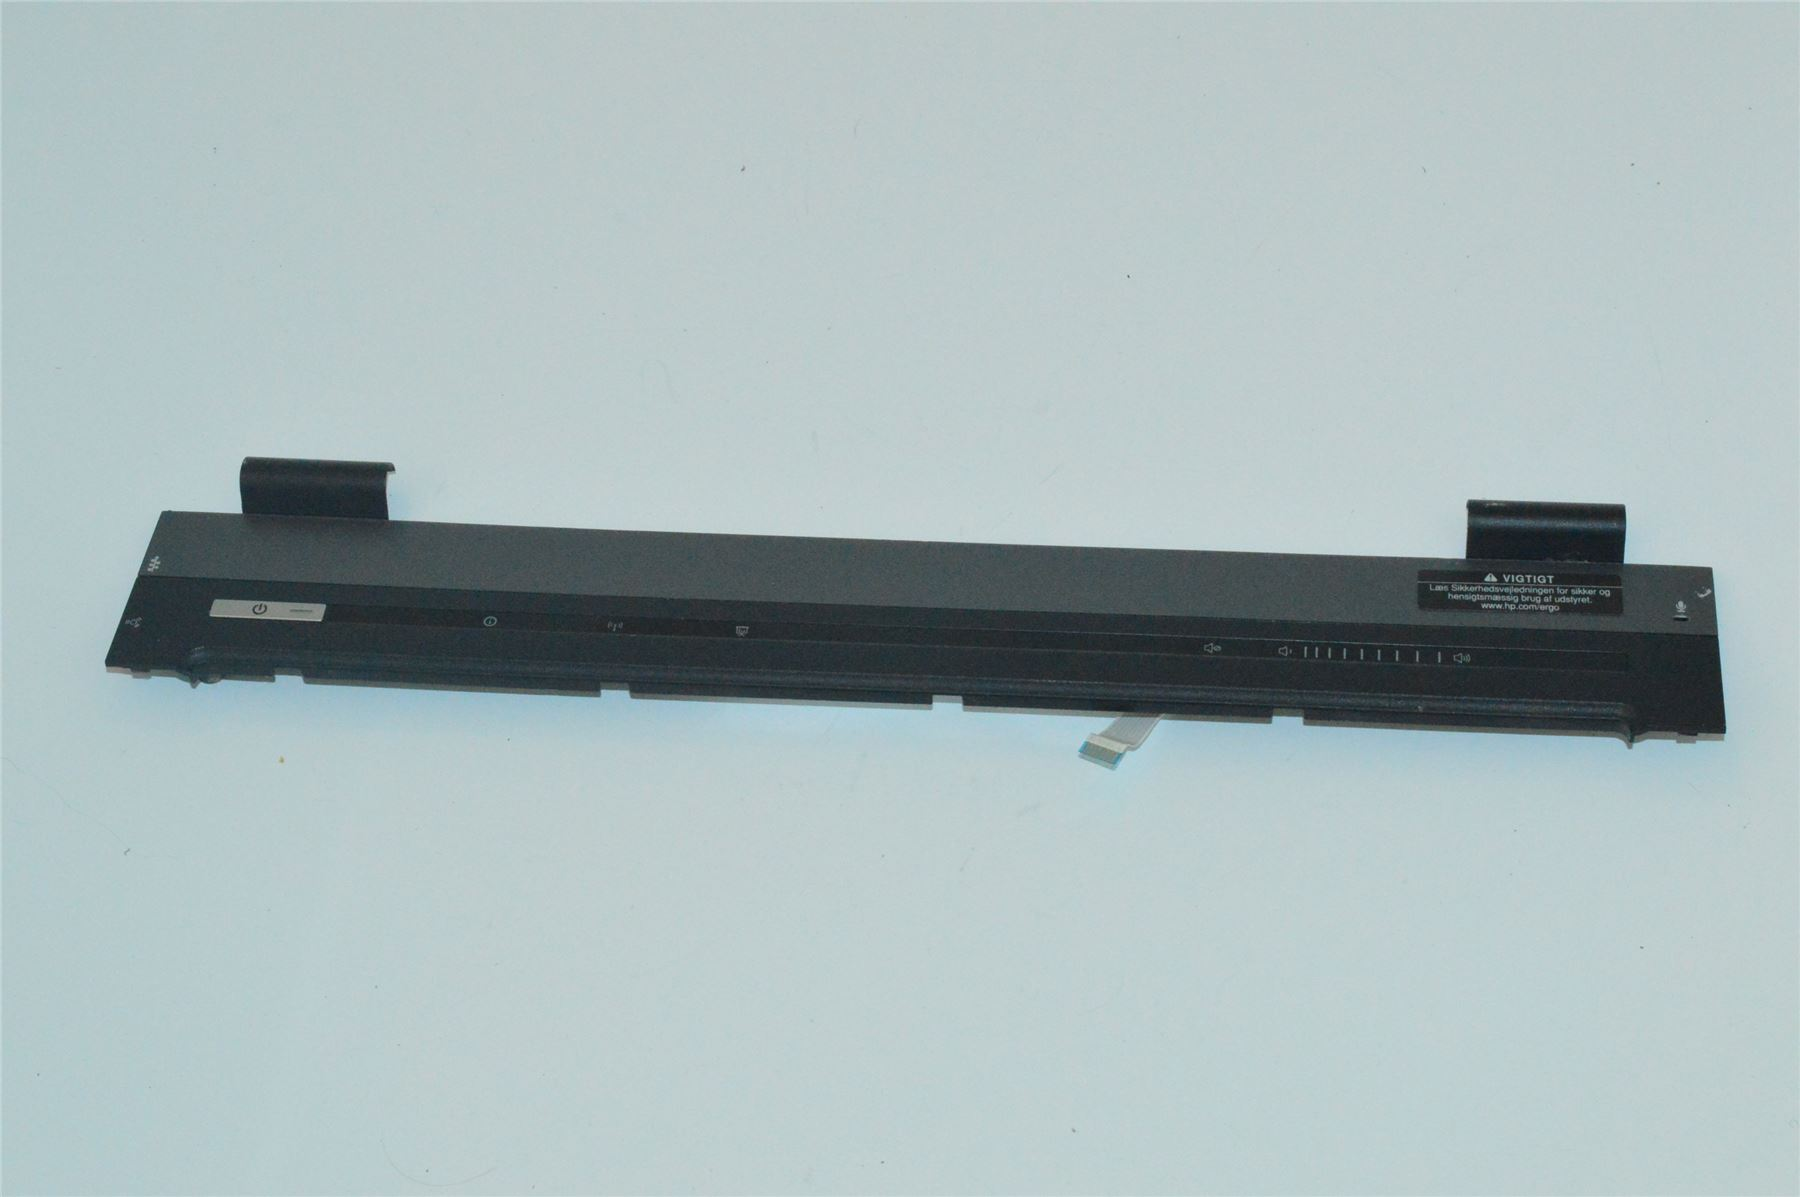 Includes LED board and cable HP 452226-001 Switch cover